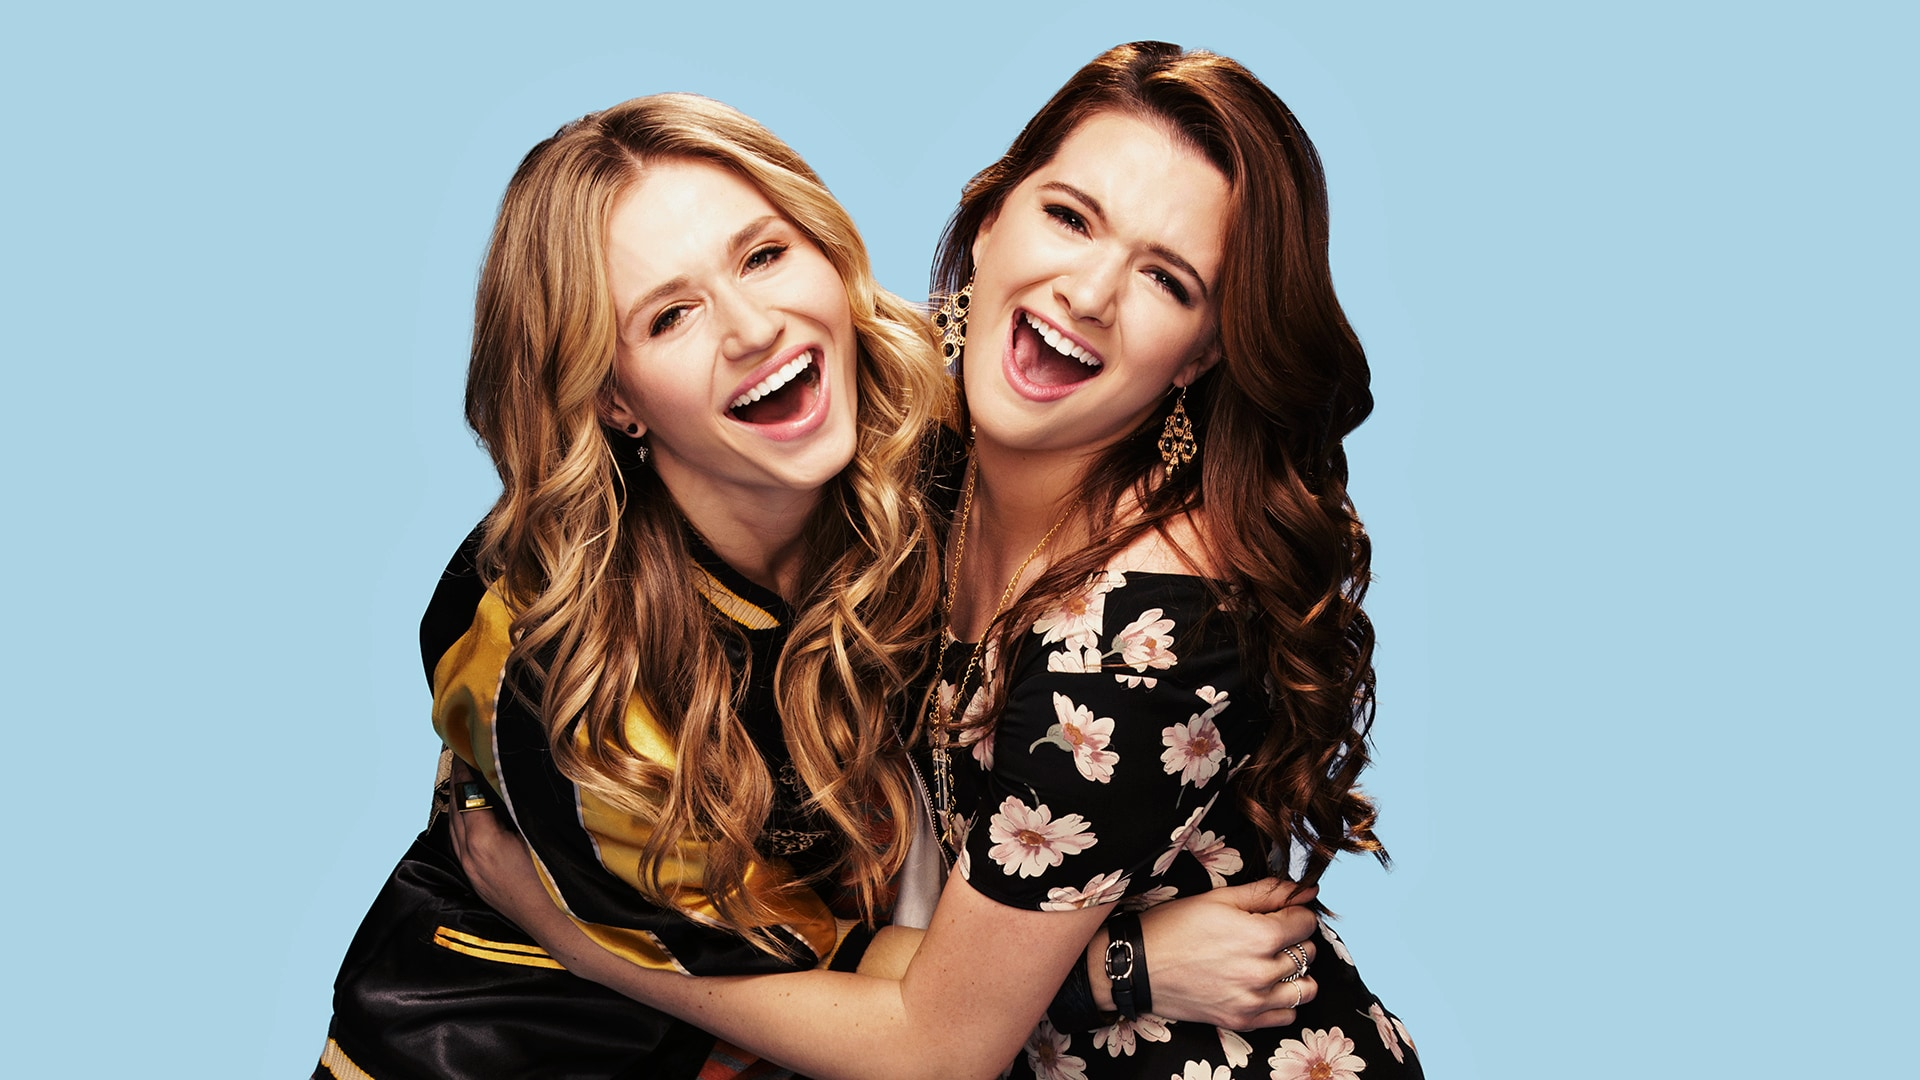 FAKING IT – Season 2 – Pictured (L-R): Rita Volk as Amy and Katie Stevens as Karma. The series returns for its ten-episode second season Tuesday, September 23 at 10:30 PM ET/PT on MTV.